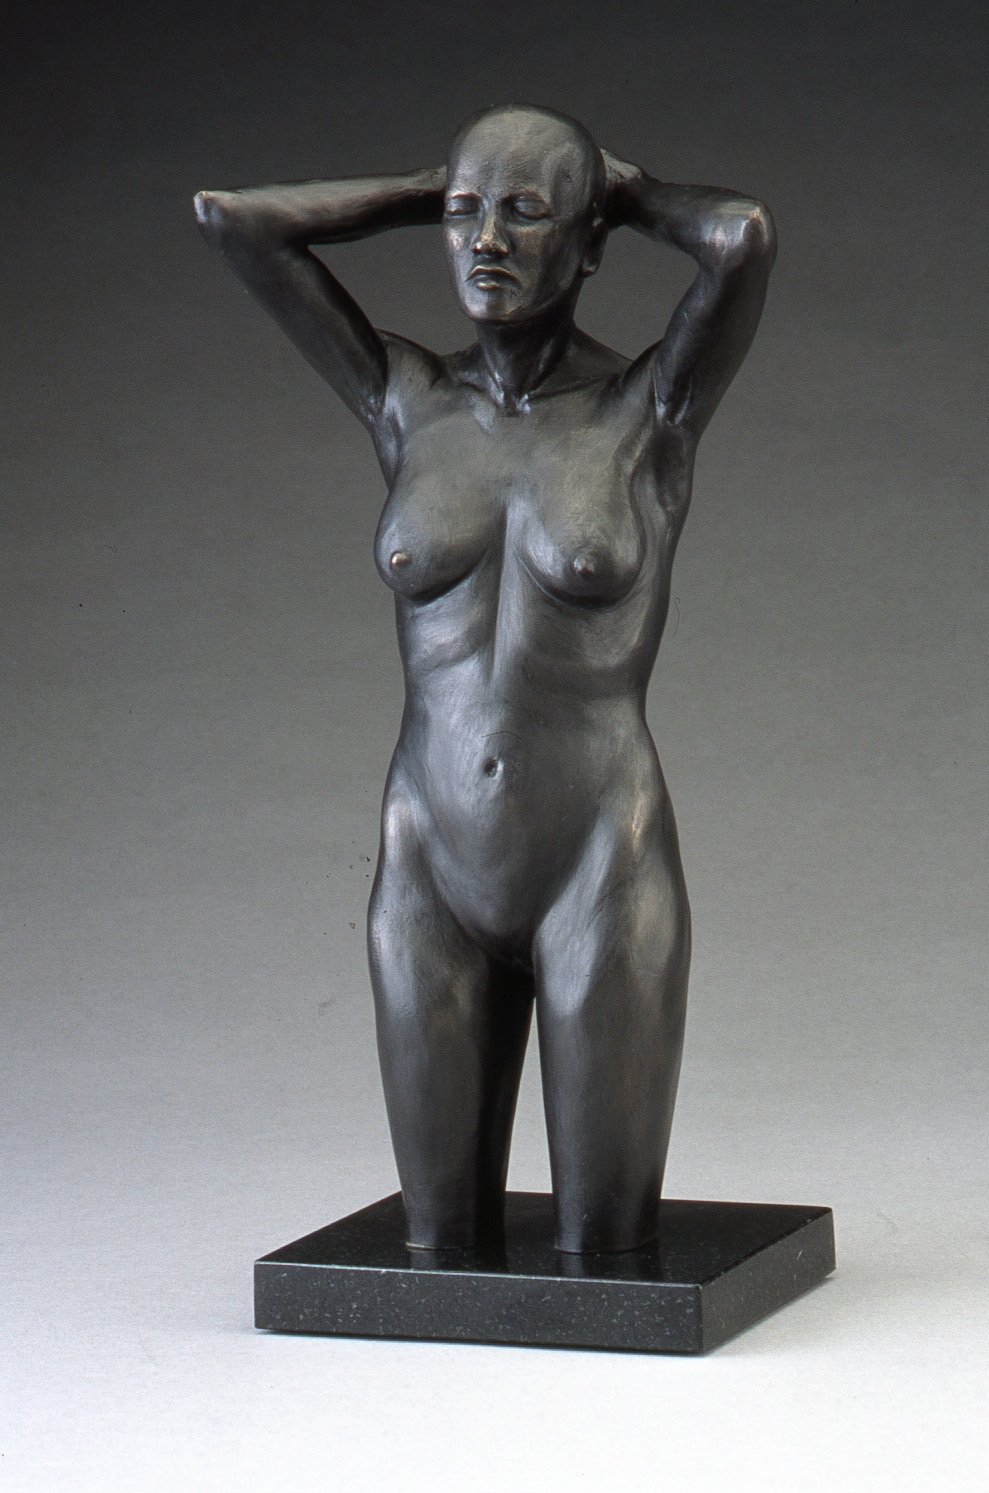 Darlene (2000) Bronze, Edition: 30, 10x4x5in. $1,650